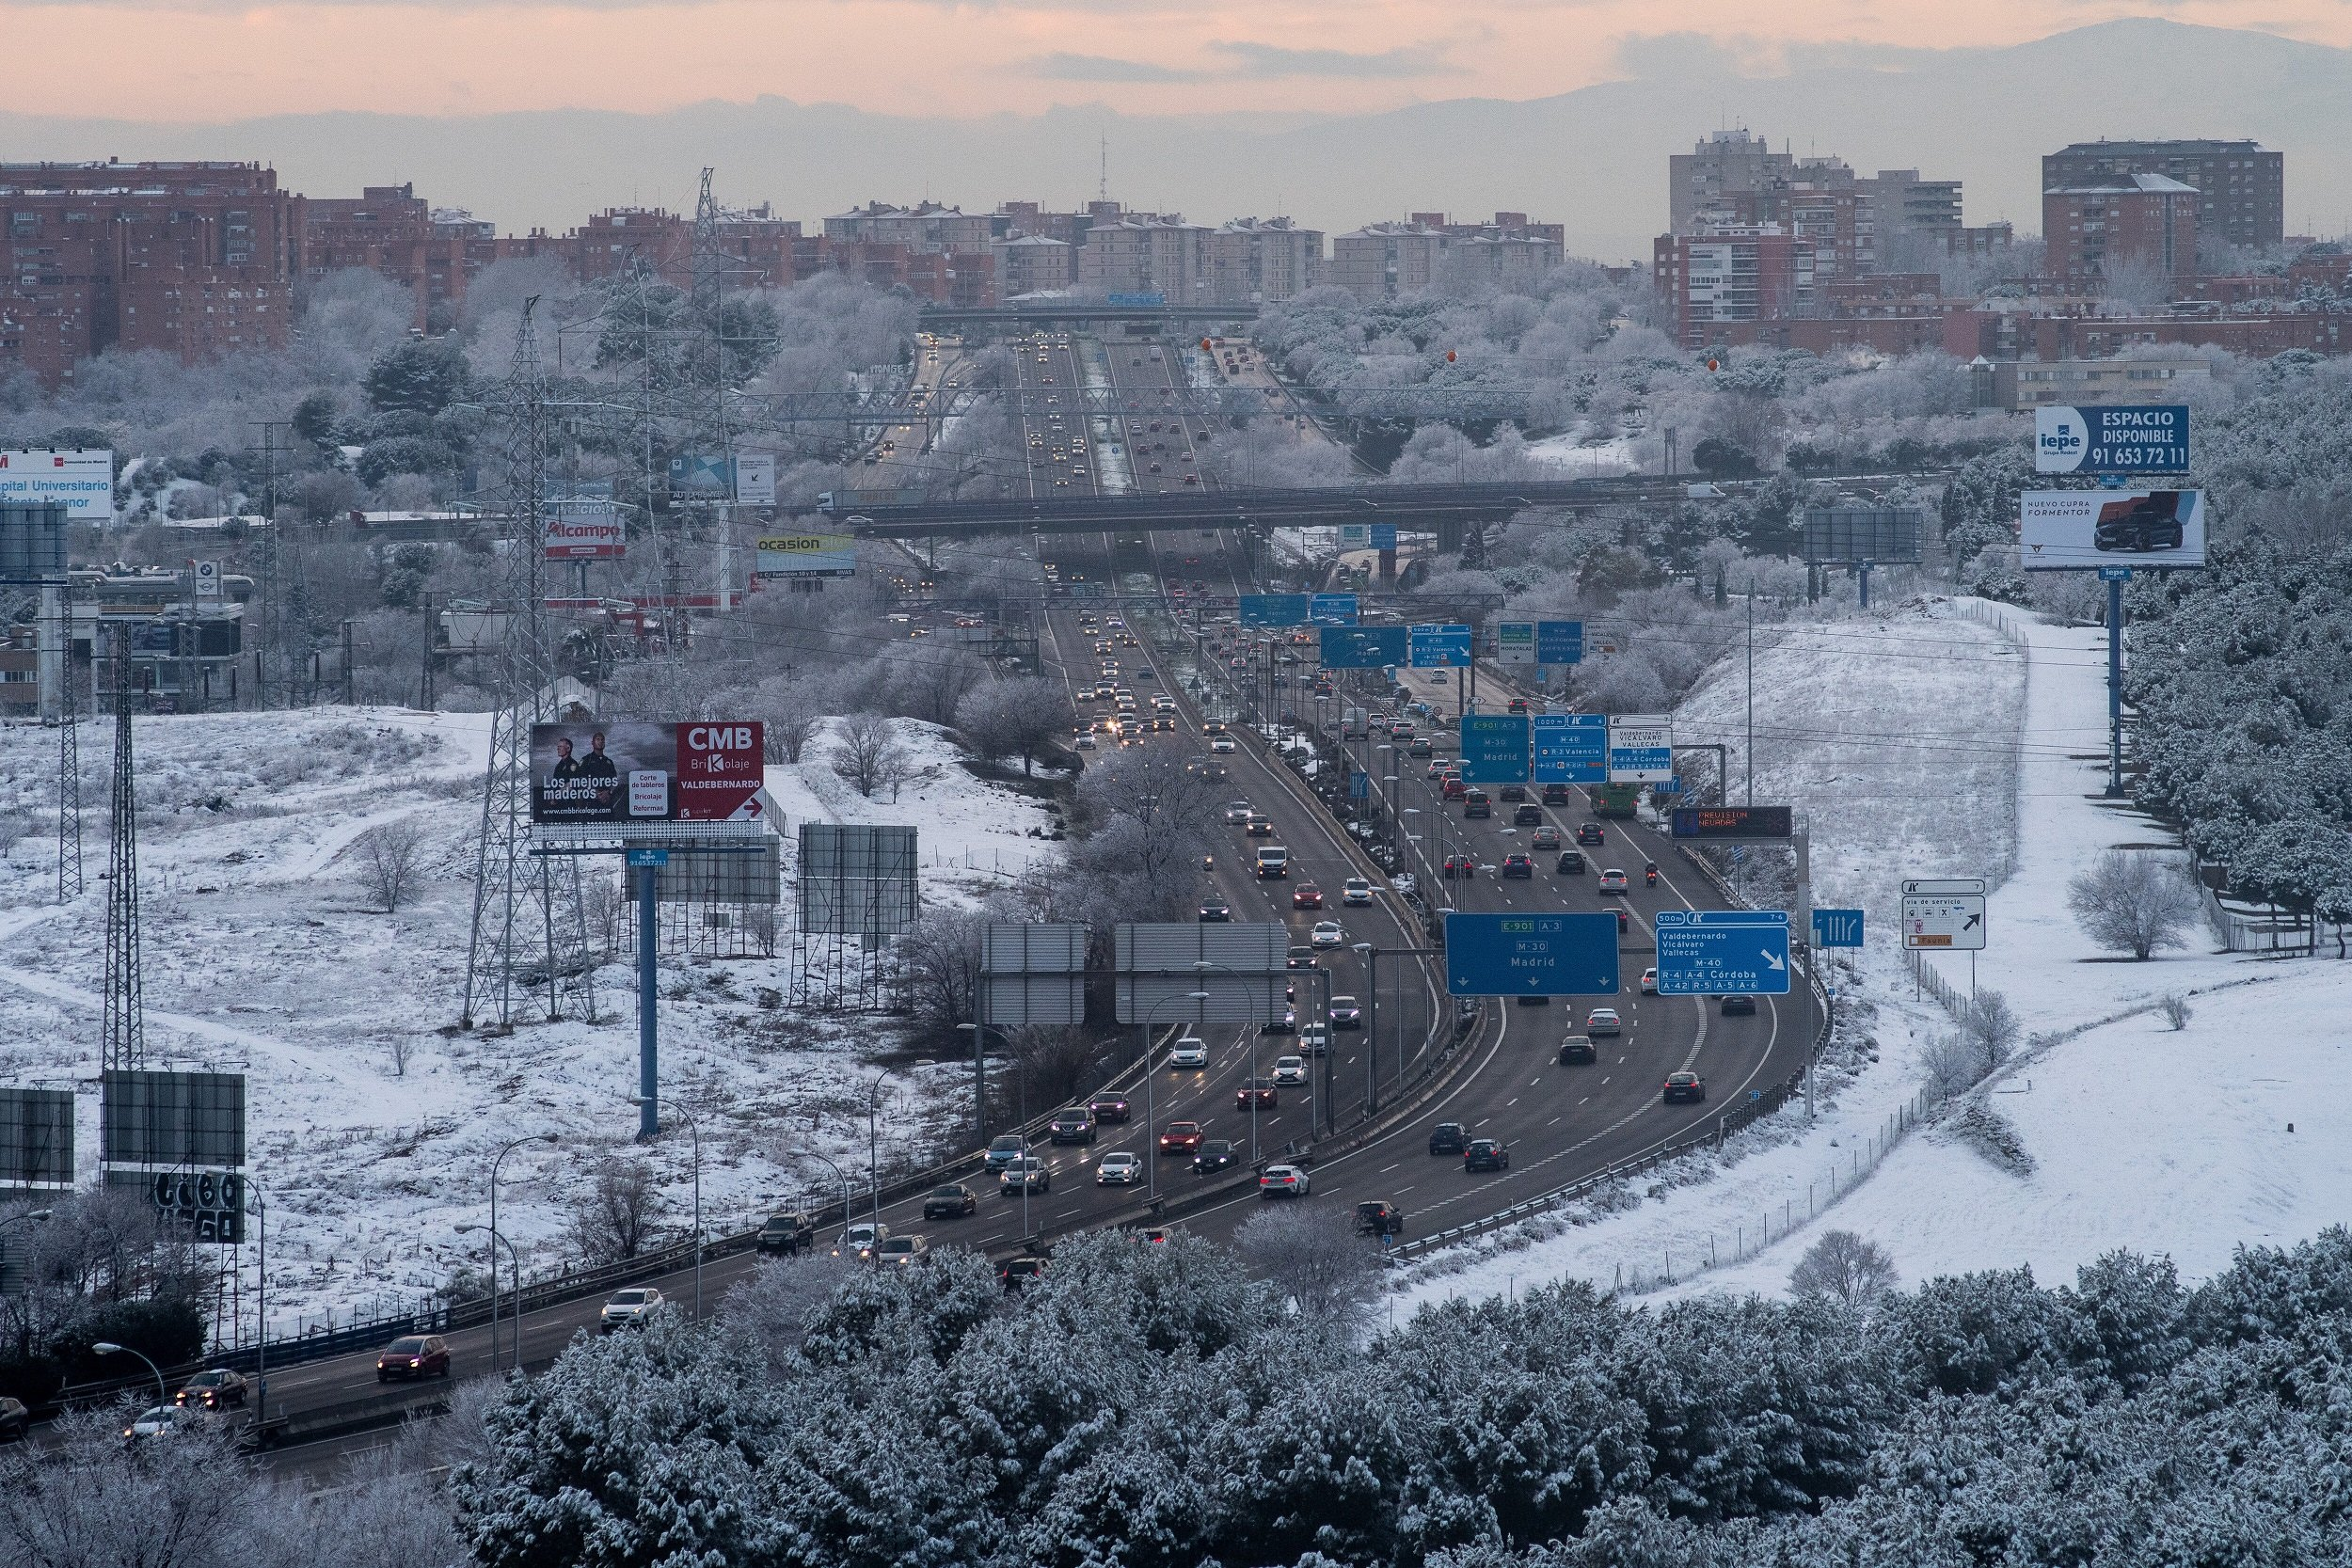 Tráfico en la autopista tras nevada en Madrid. | Foto: Getty Images